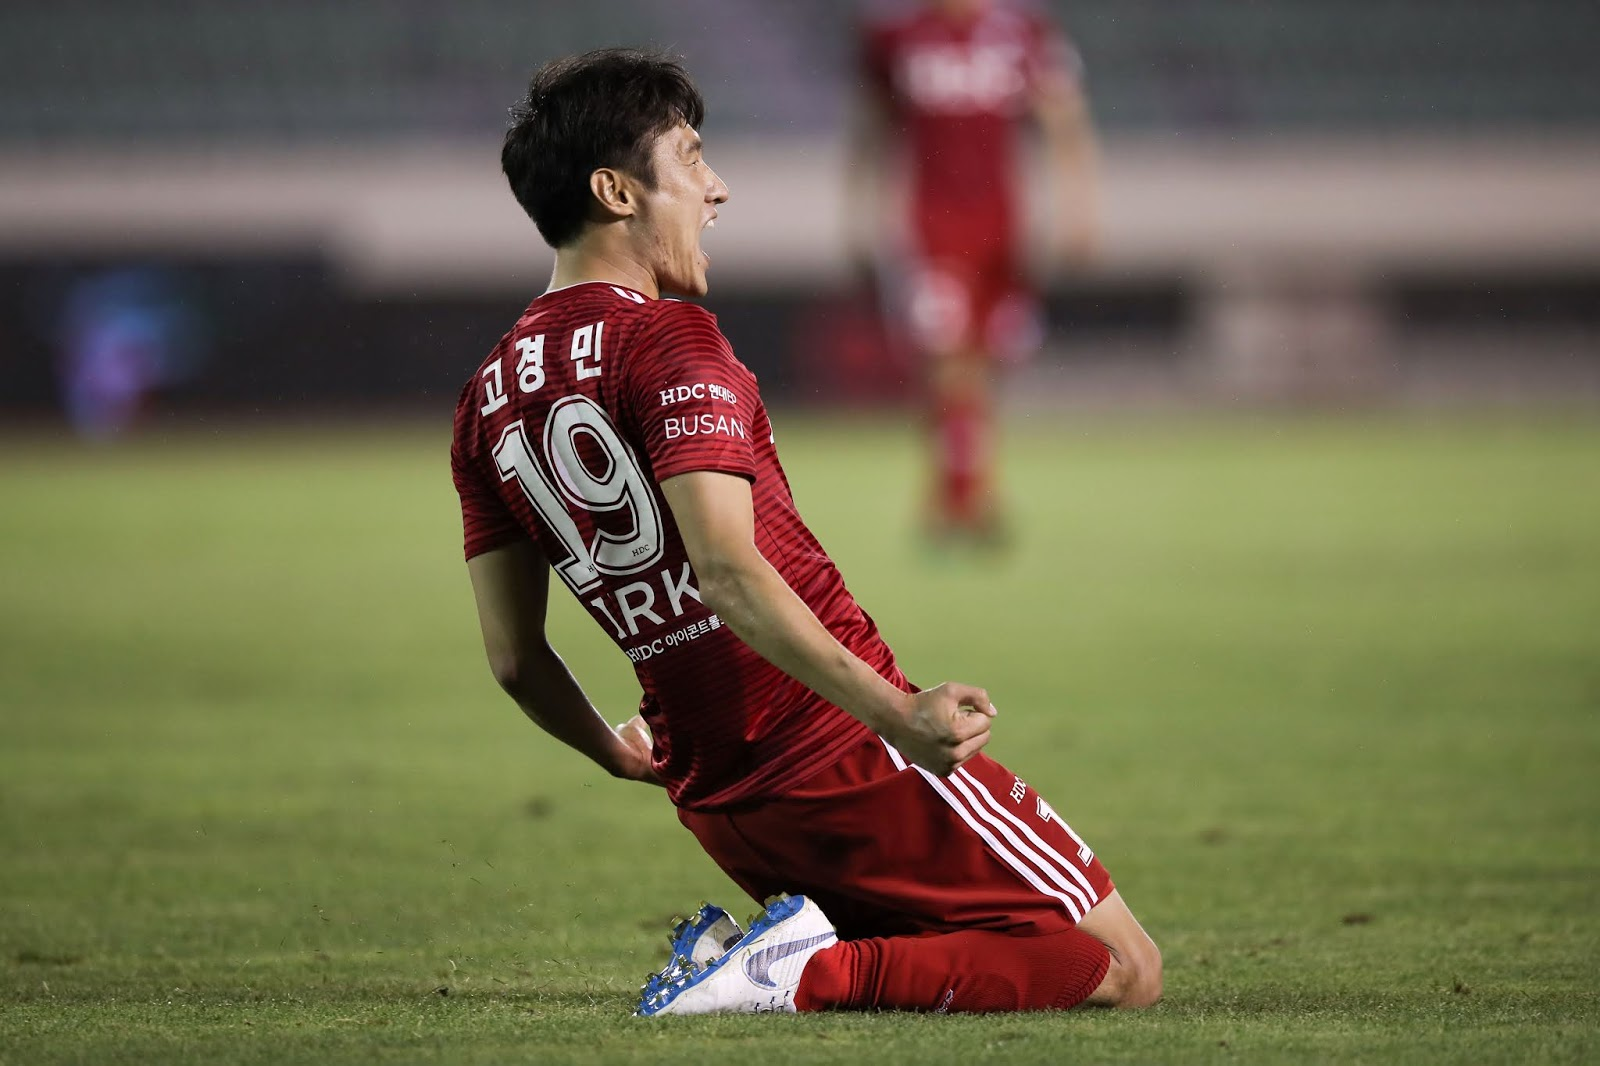 Preview: Asan Mugunghwa vs Busan Park K League 2